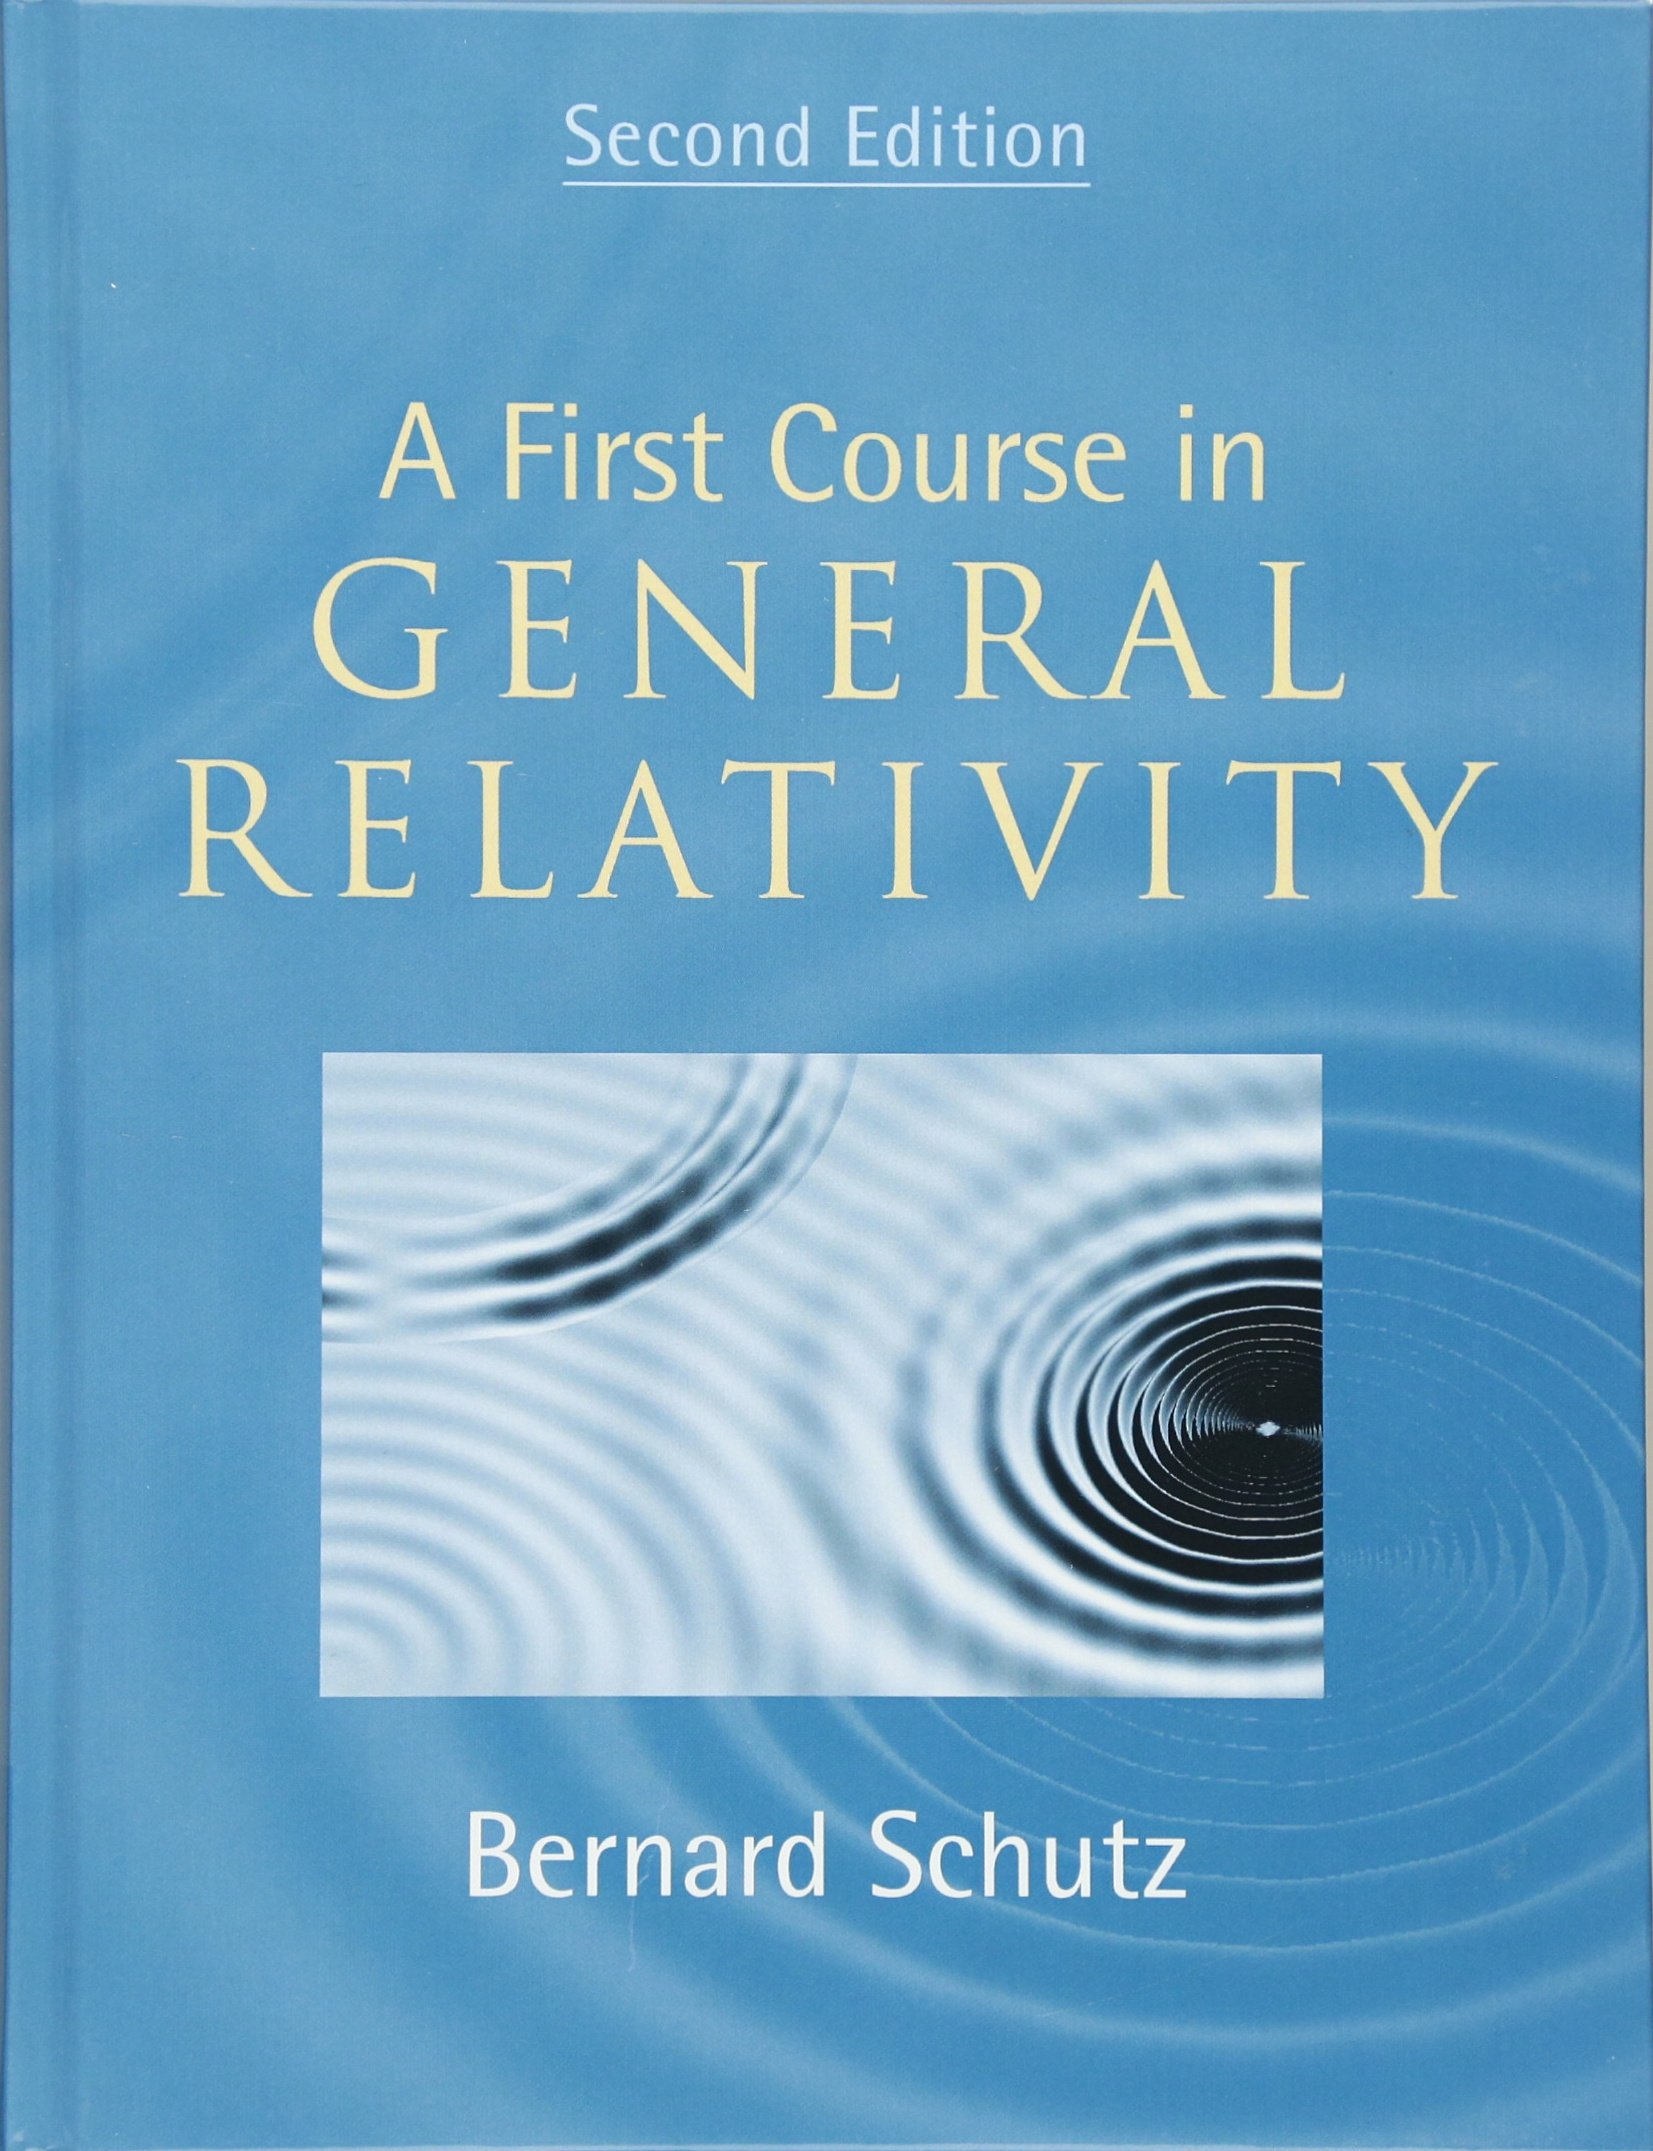 A General Relativity Workbook Pdf